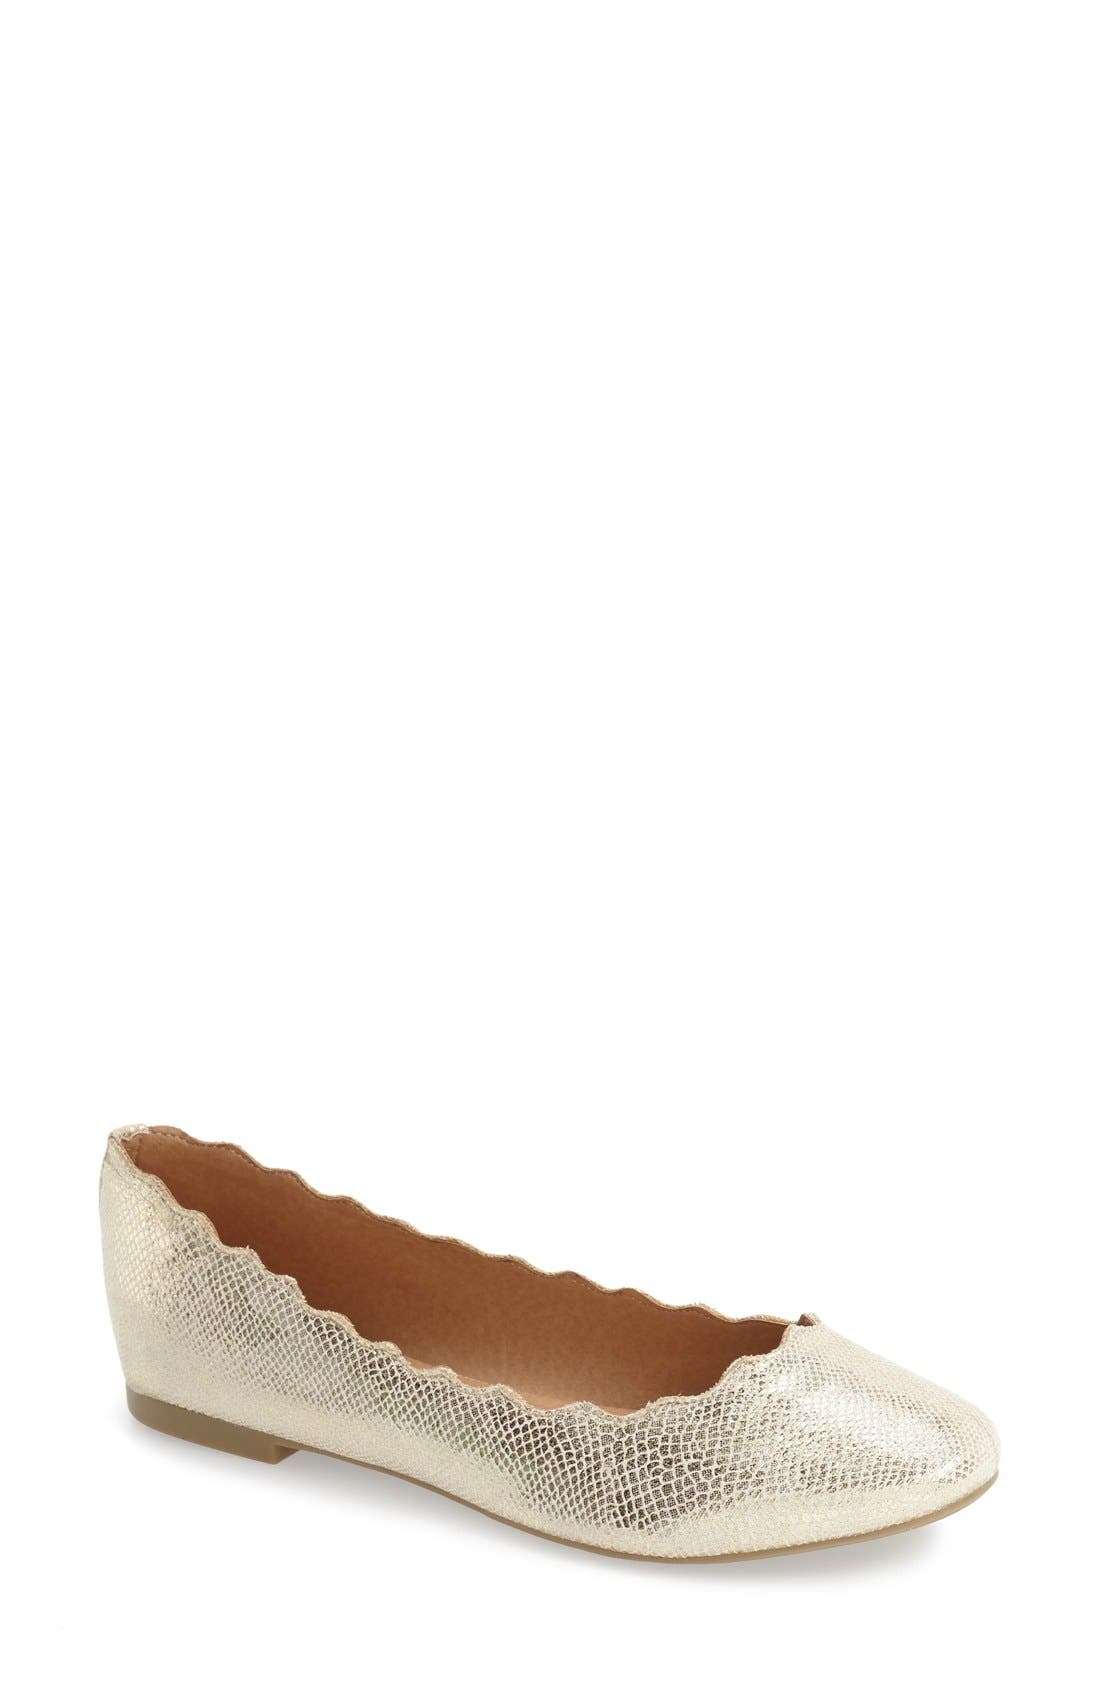 'Toffy' Ballet Flat,                         Main,                         color, Gold Snake